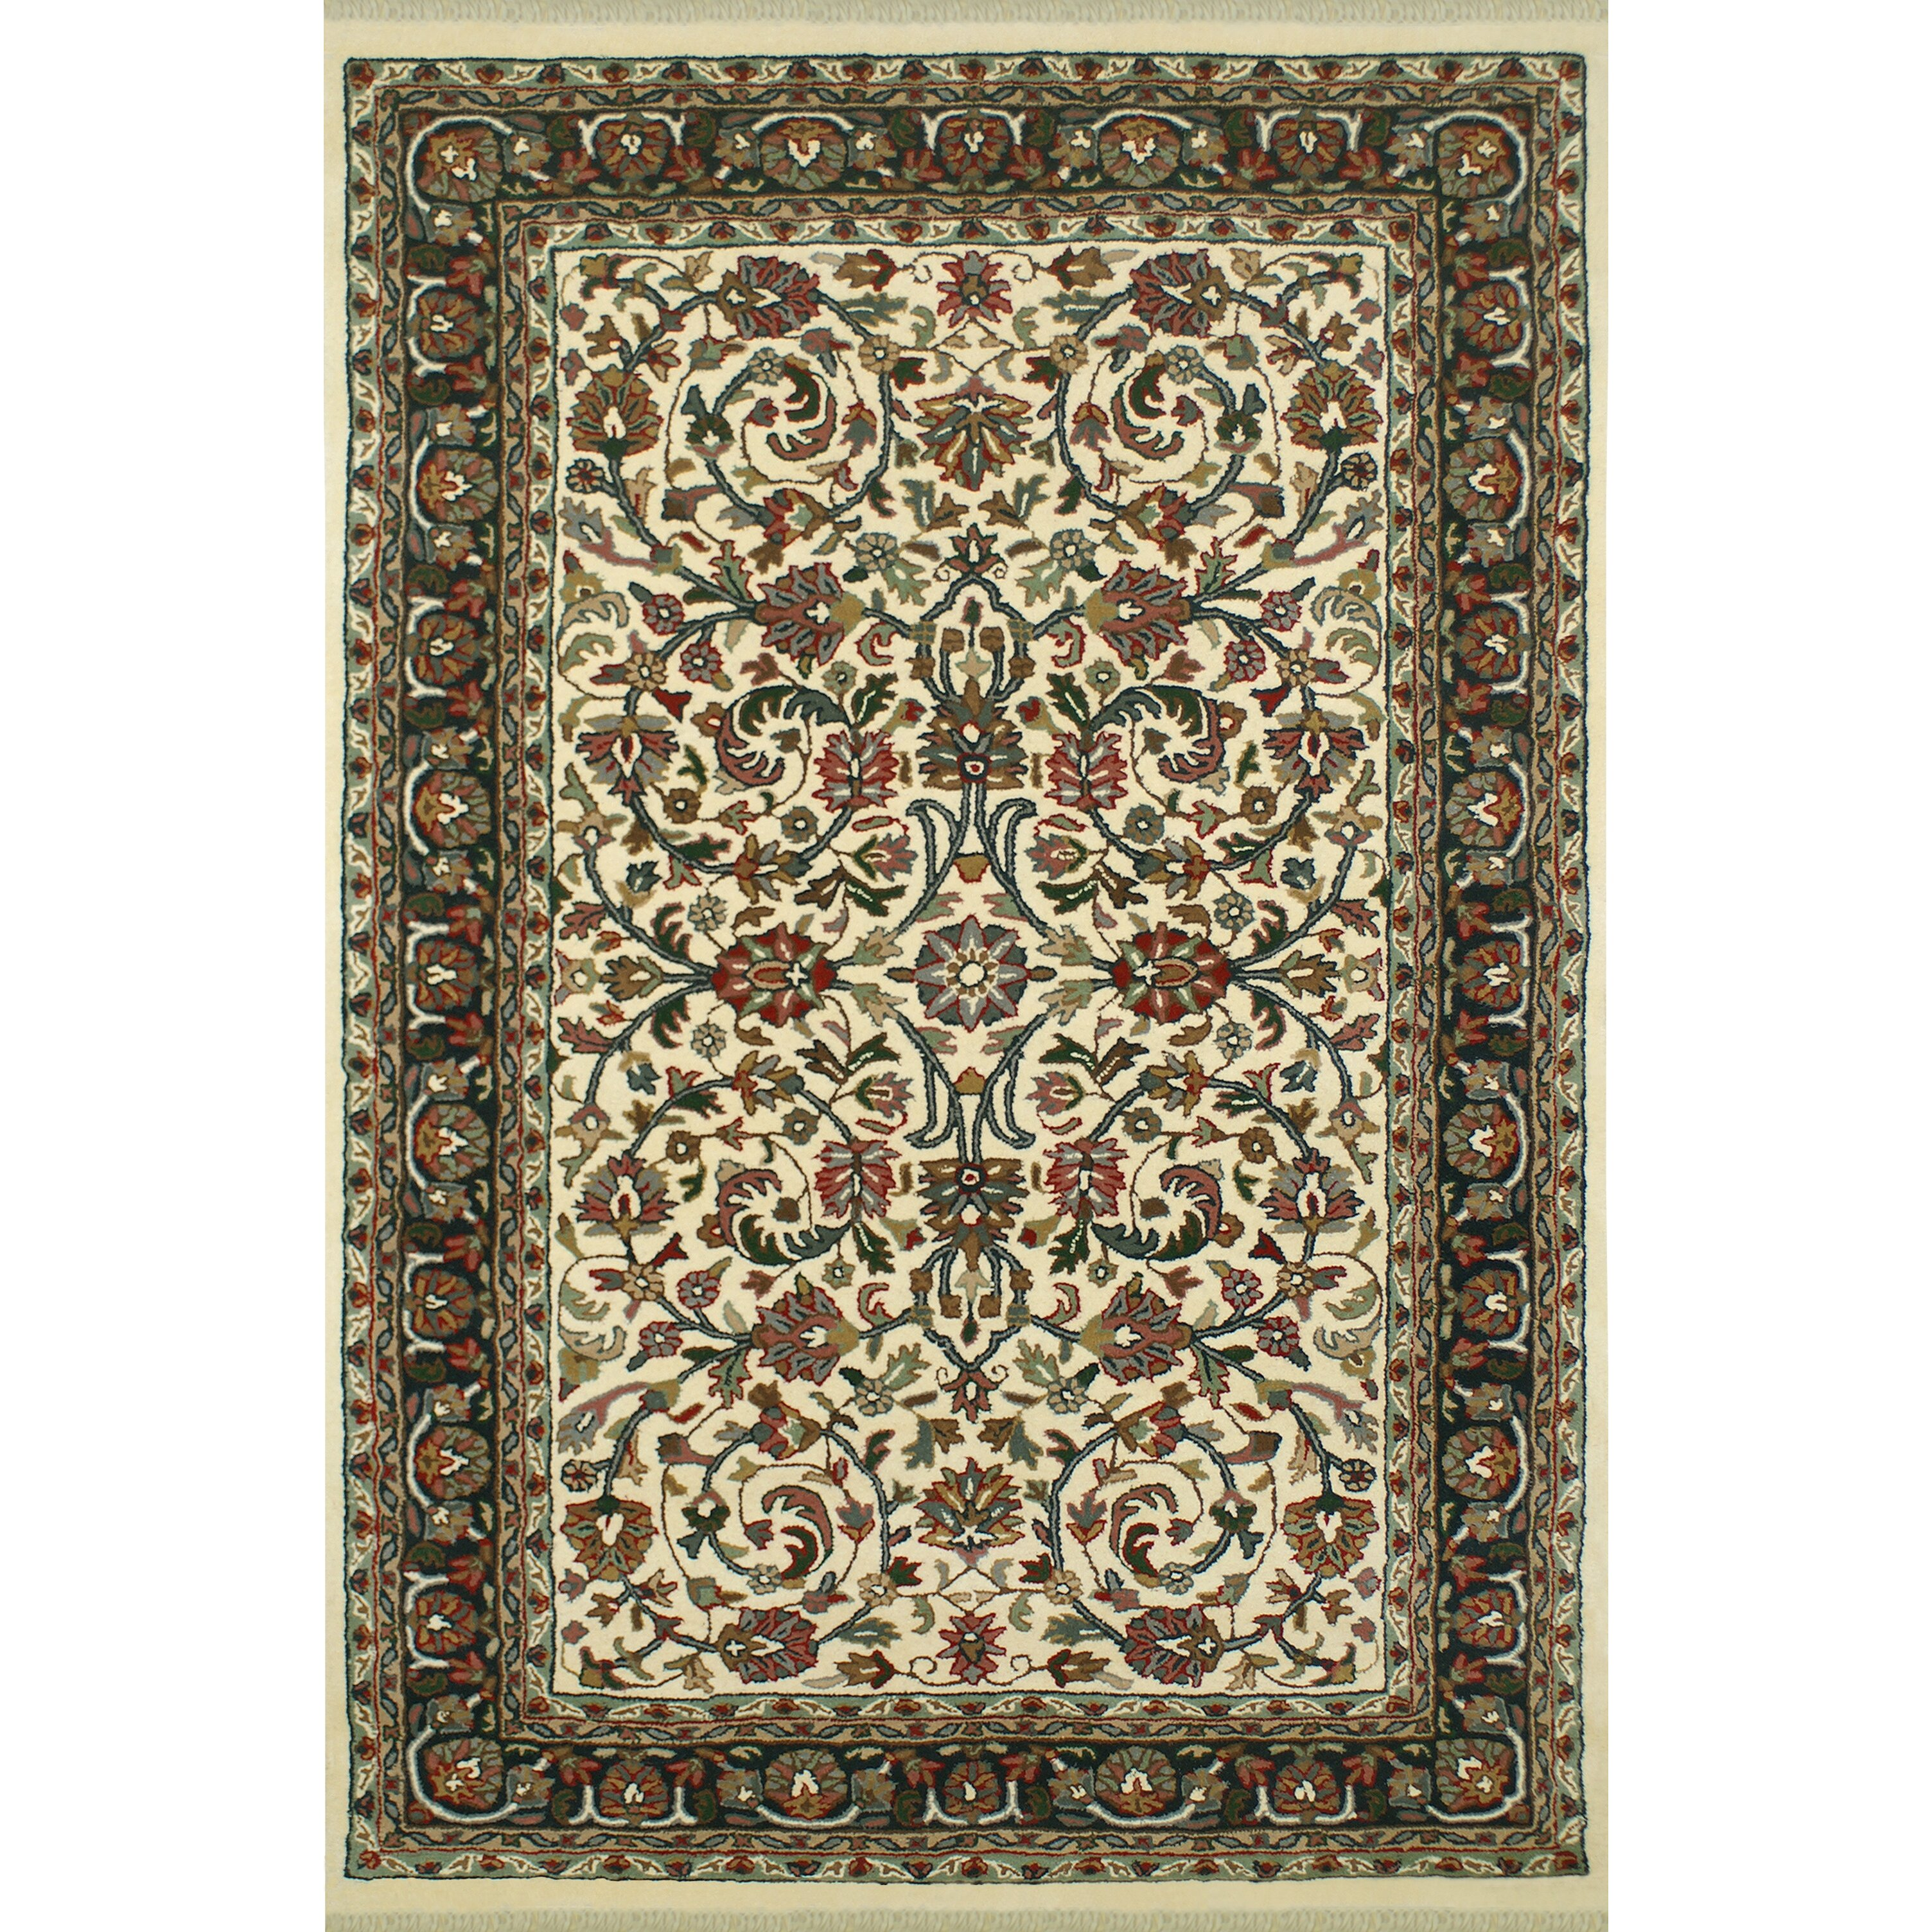 American home rug co american home classic kashan ivory for Classic american homes reviews